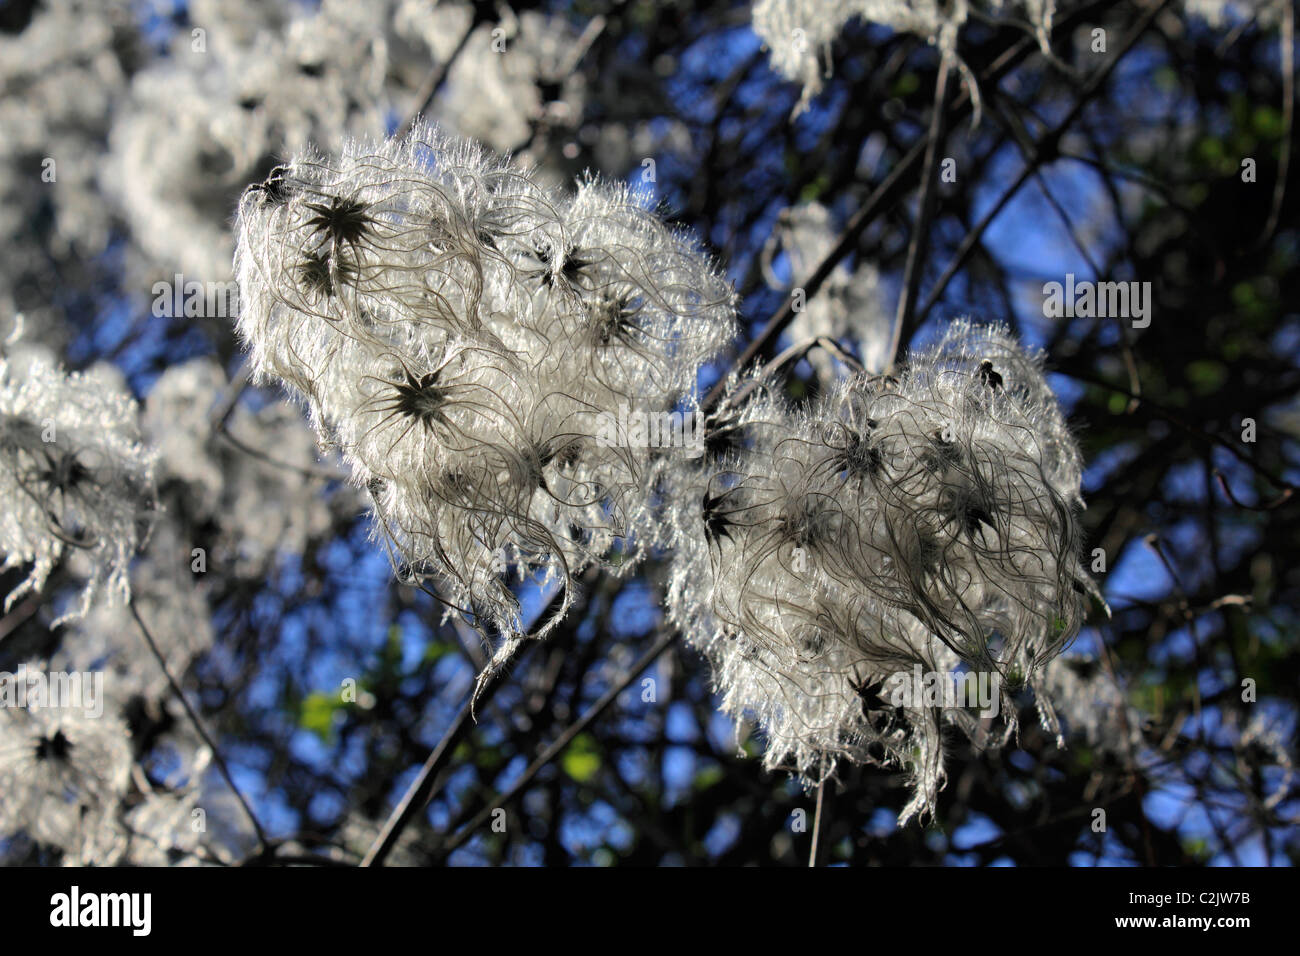 Clematis vitalba - known as Old man's beard or Traveller's Joy, a climbing shrub of the Ranunculaceae family. - Stock Image